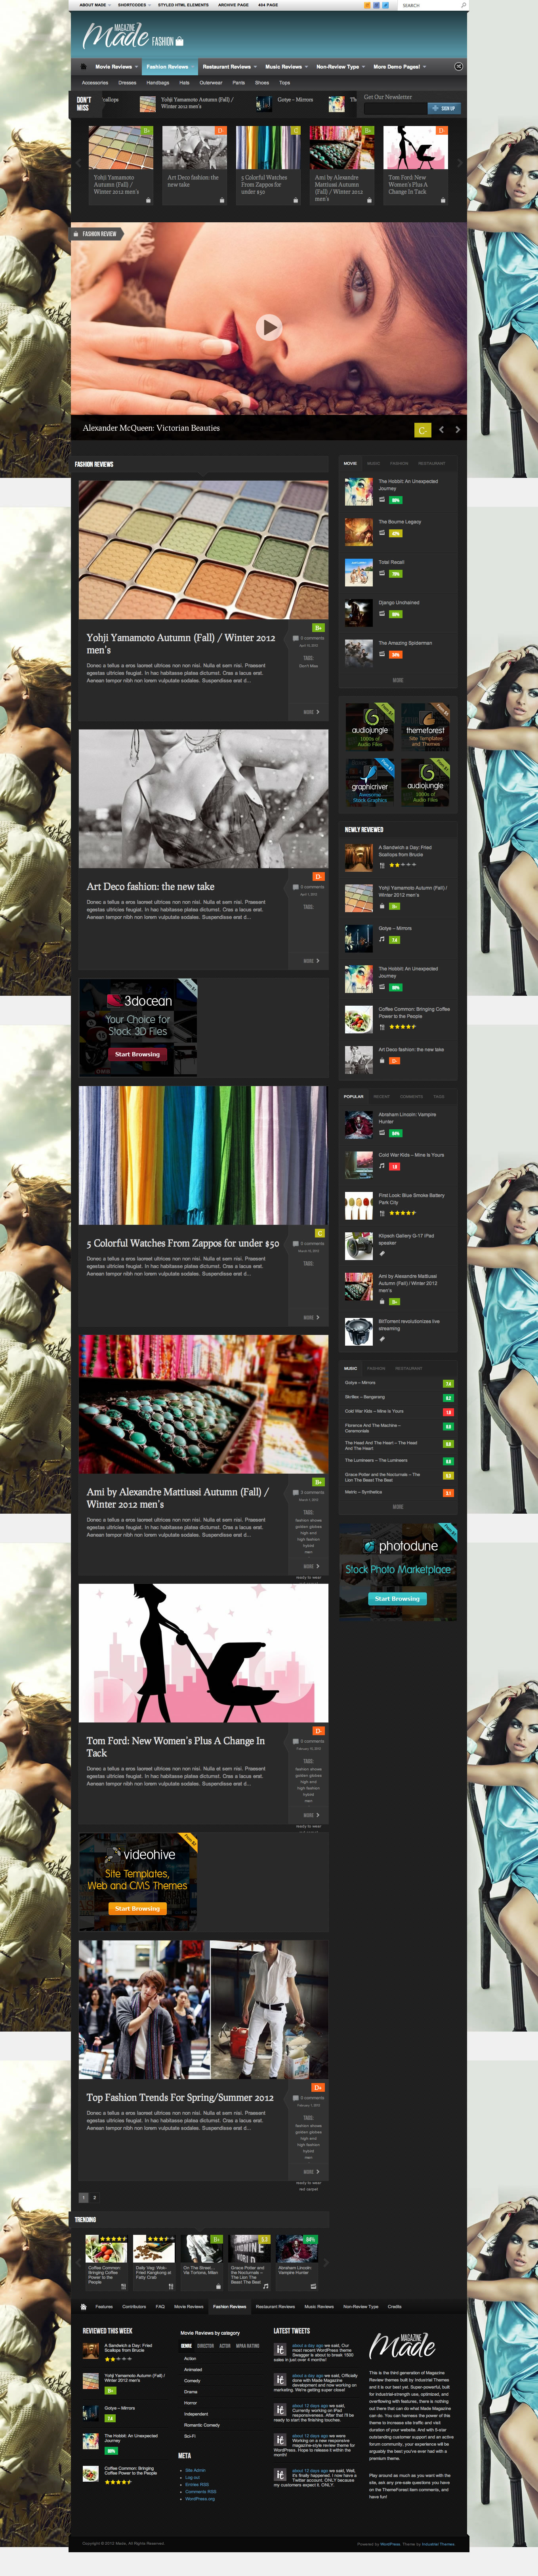 Color zen metacritic - Made Responsive Review Magazine Site Template